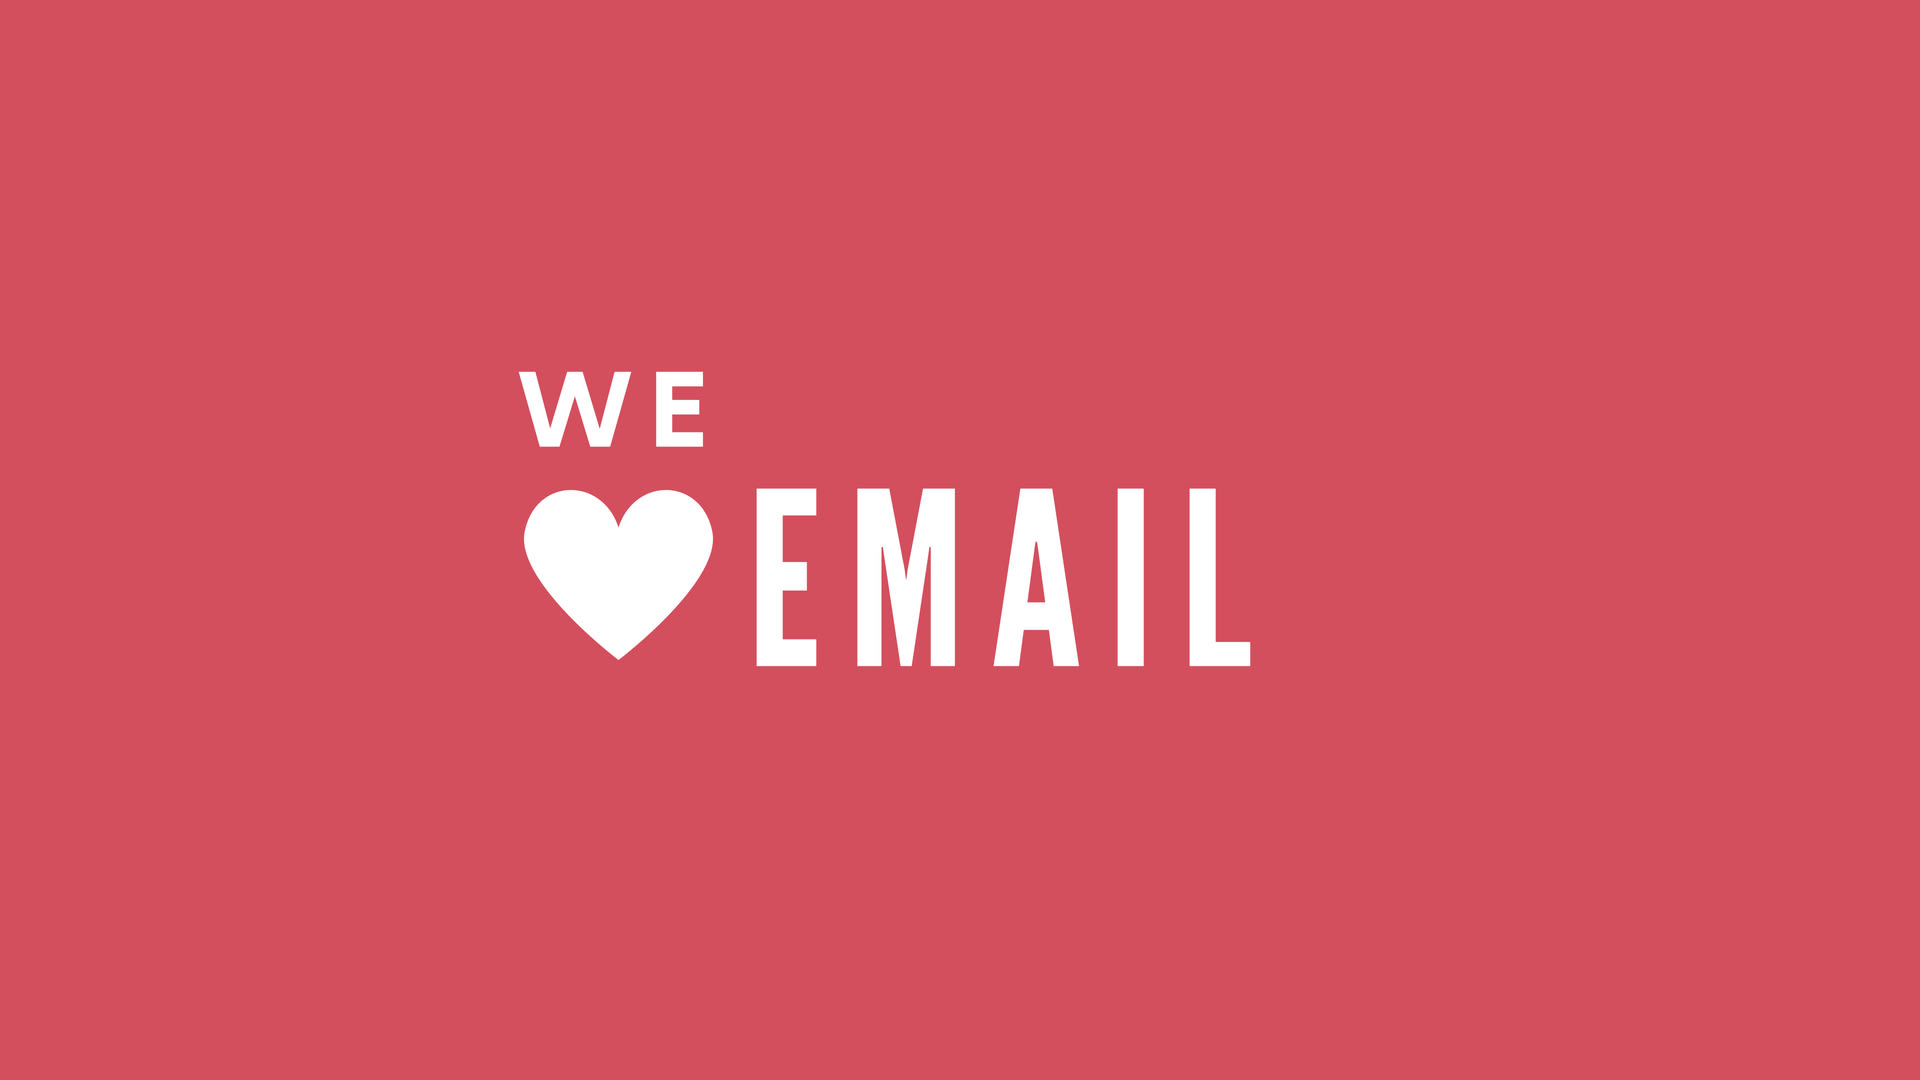 Why do email marketing?